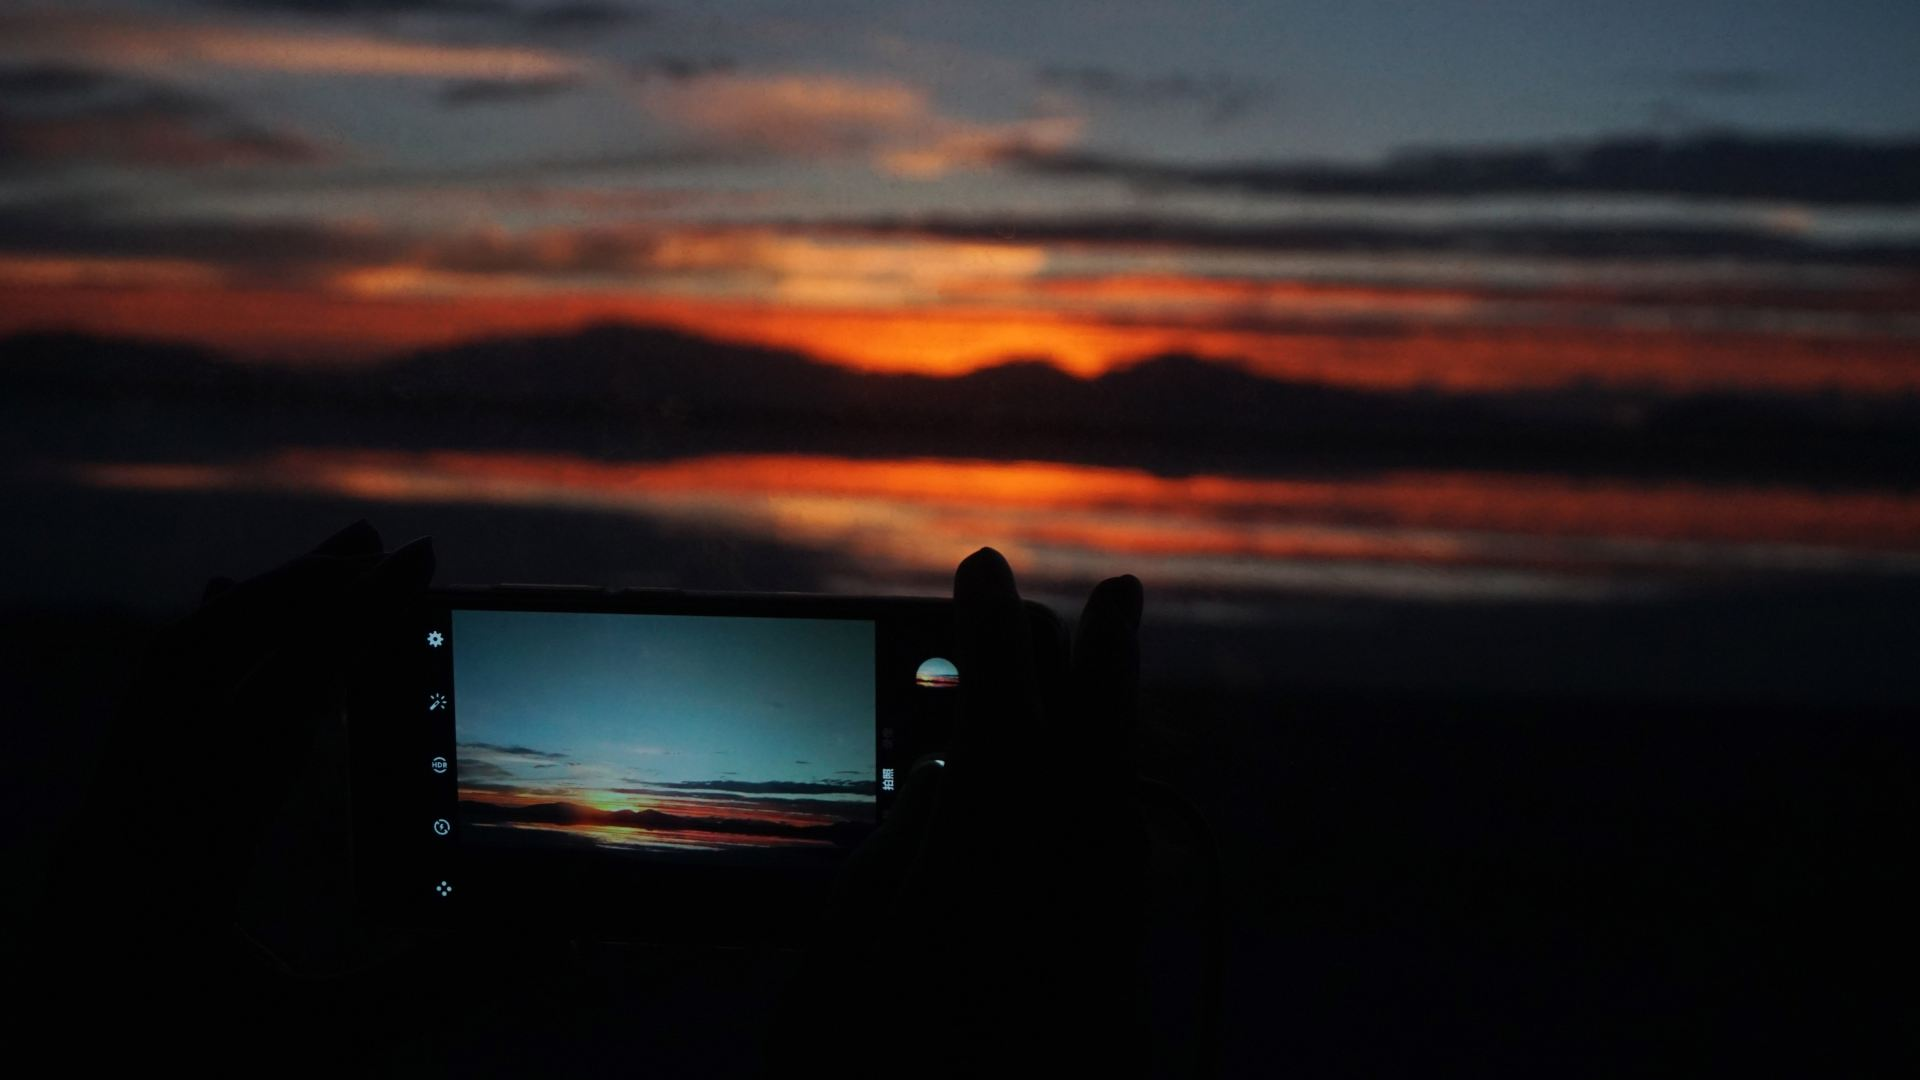 silhouette photography of person capturing sunset with smartphone